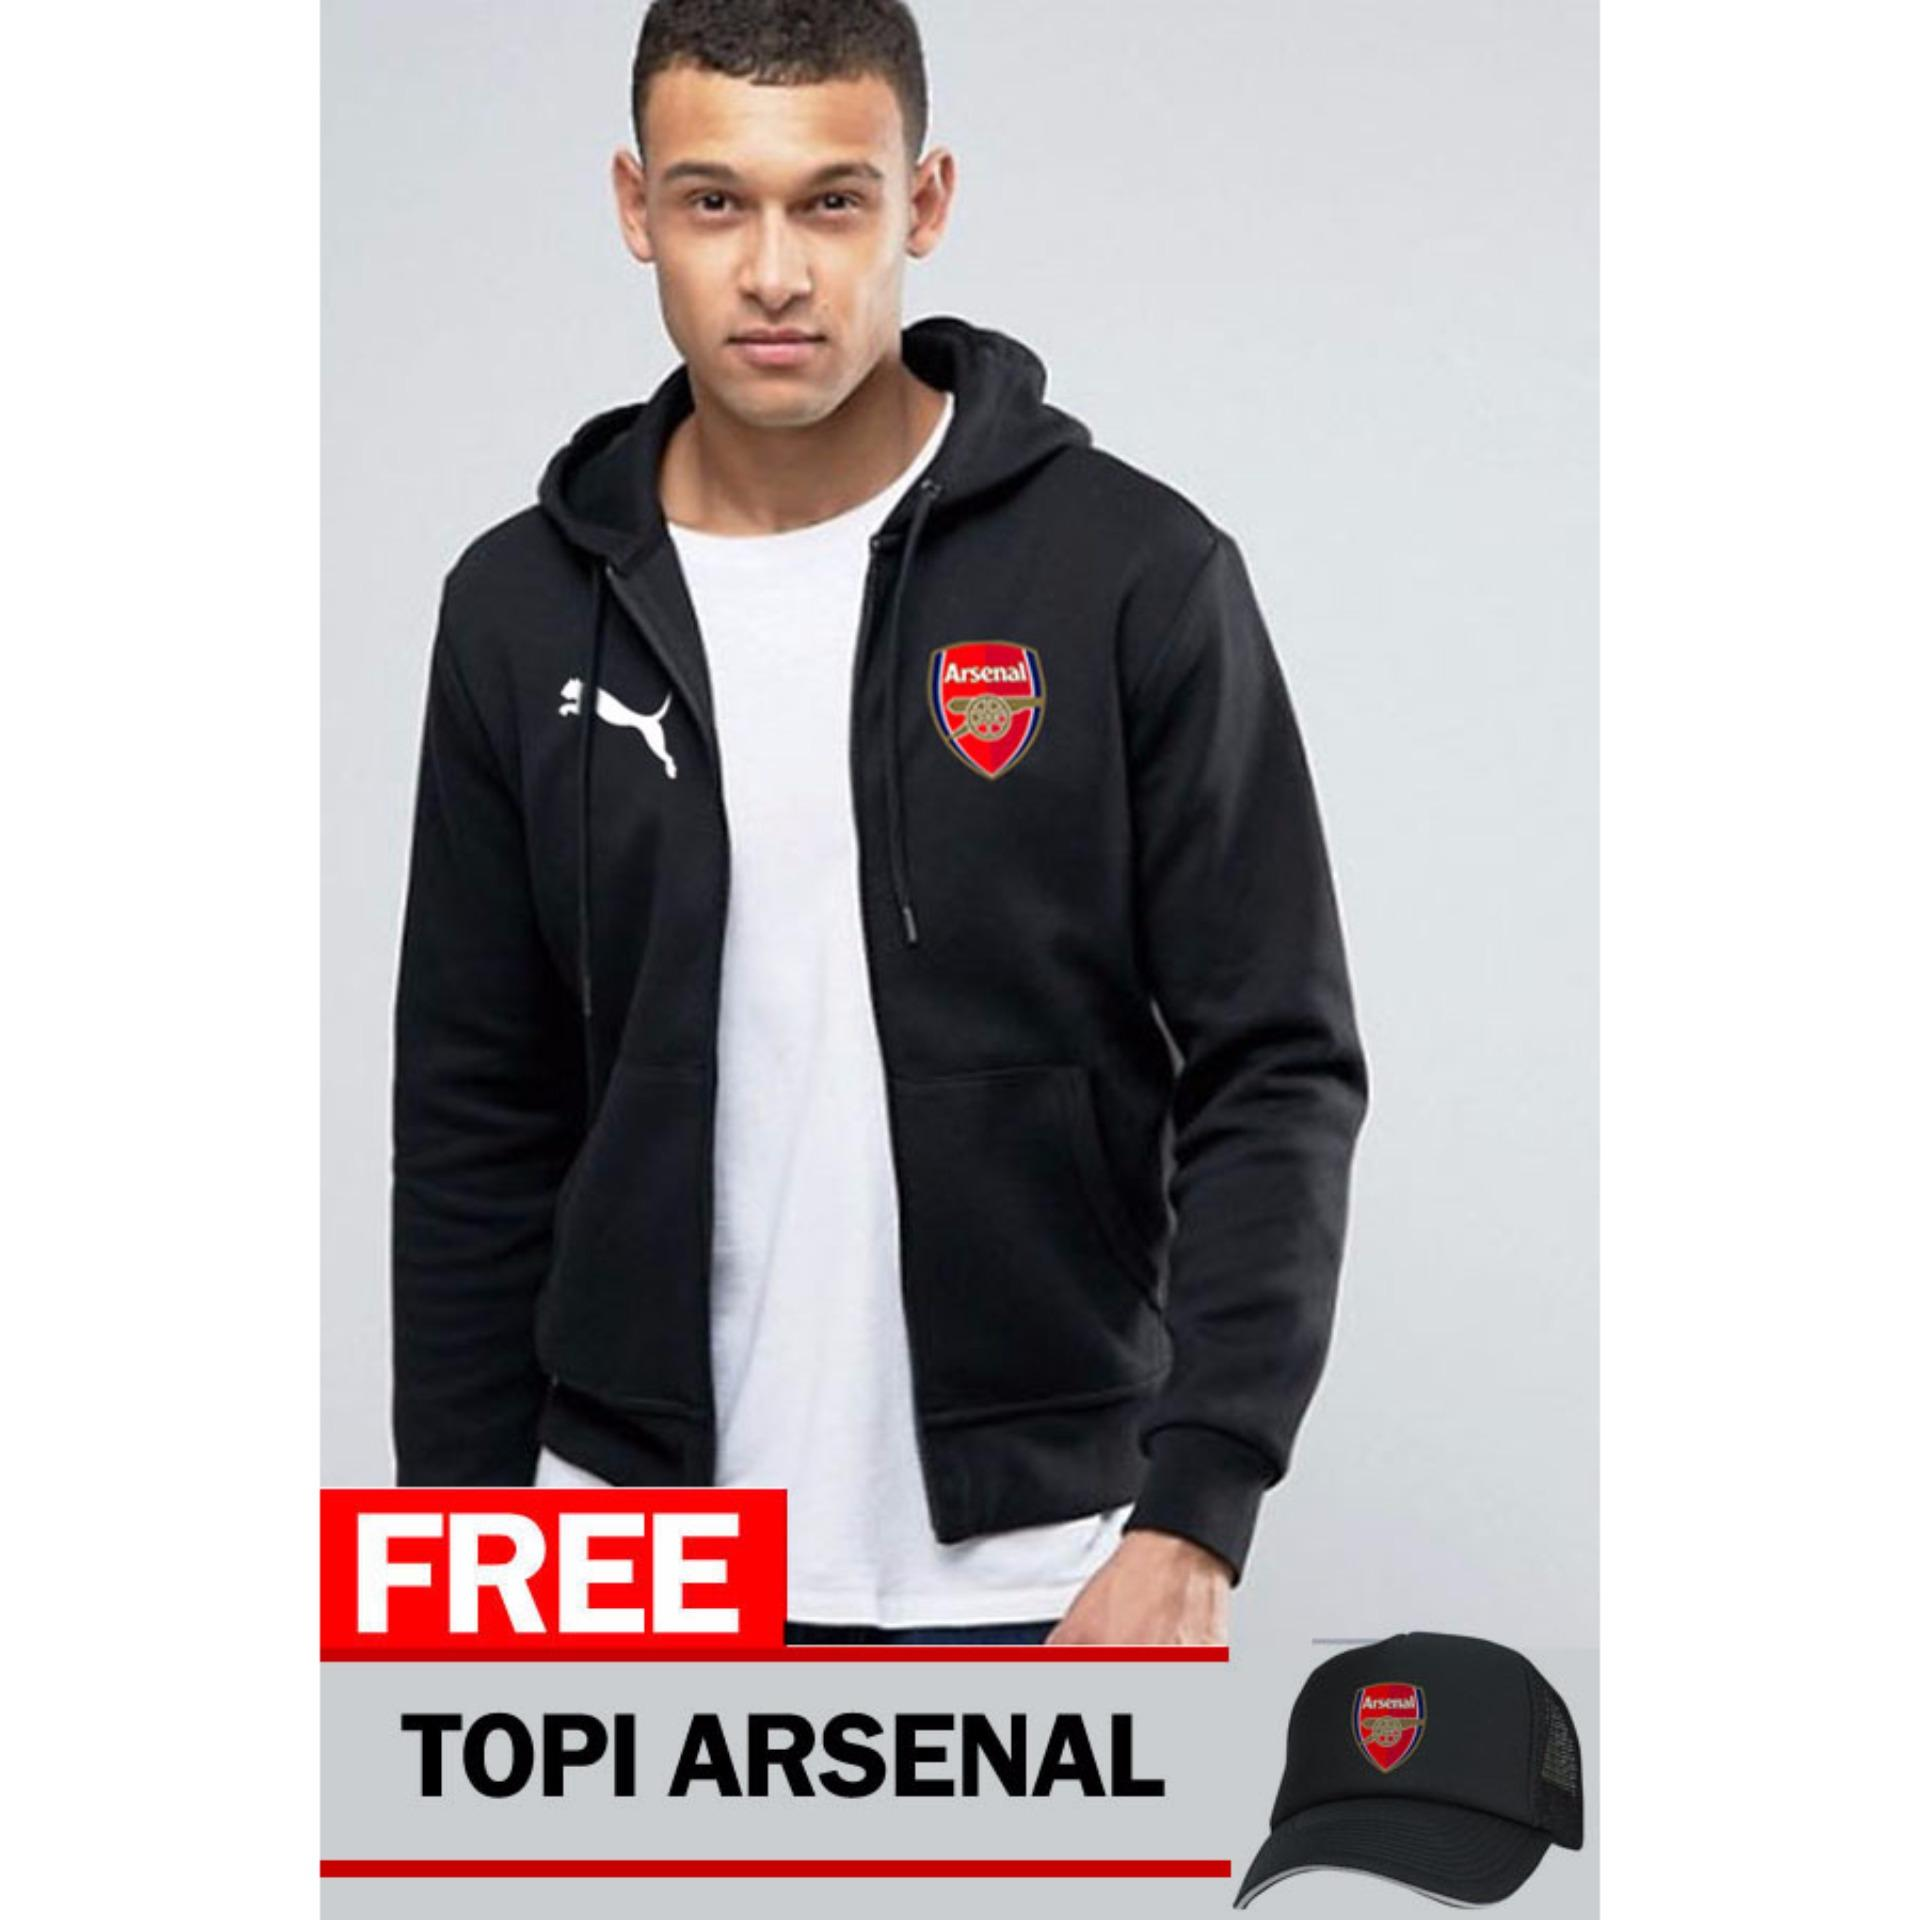 Harga Just Cloth Jaket Zipper Arsenal Free Topi Arsenal Hitam Original